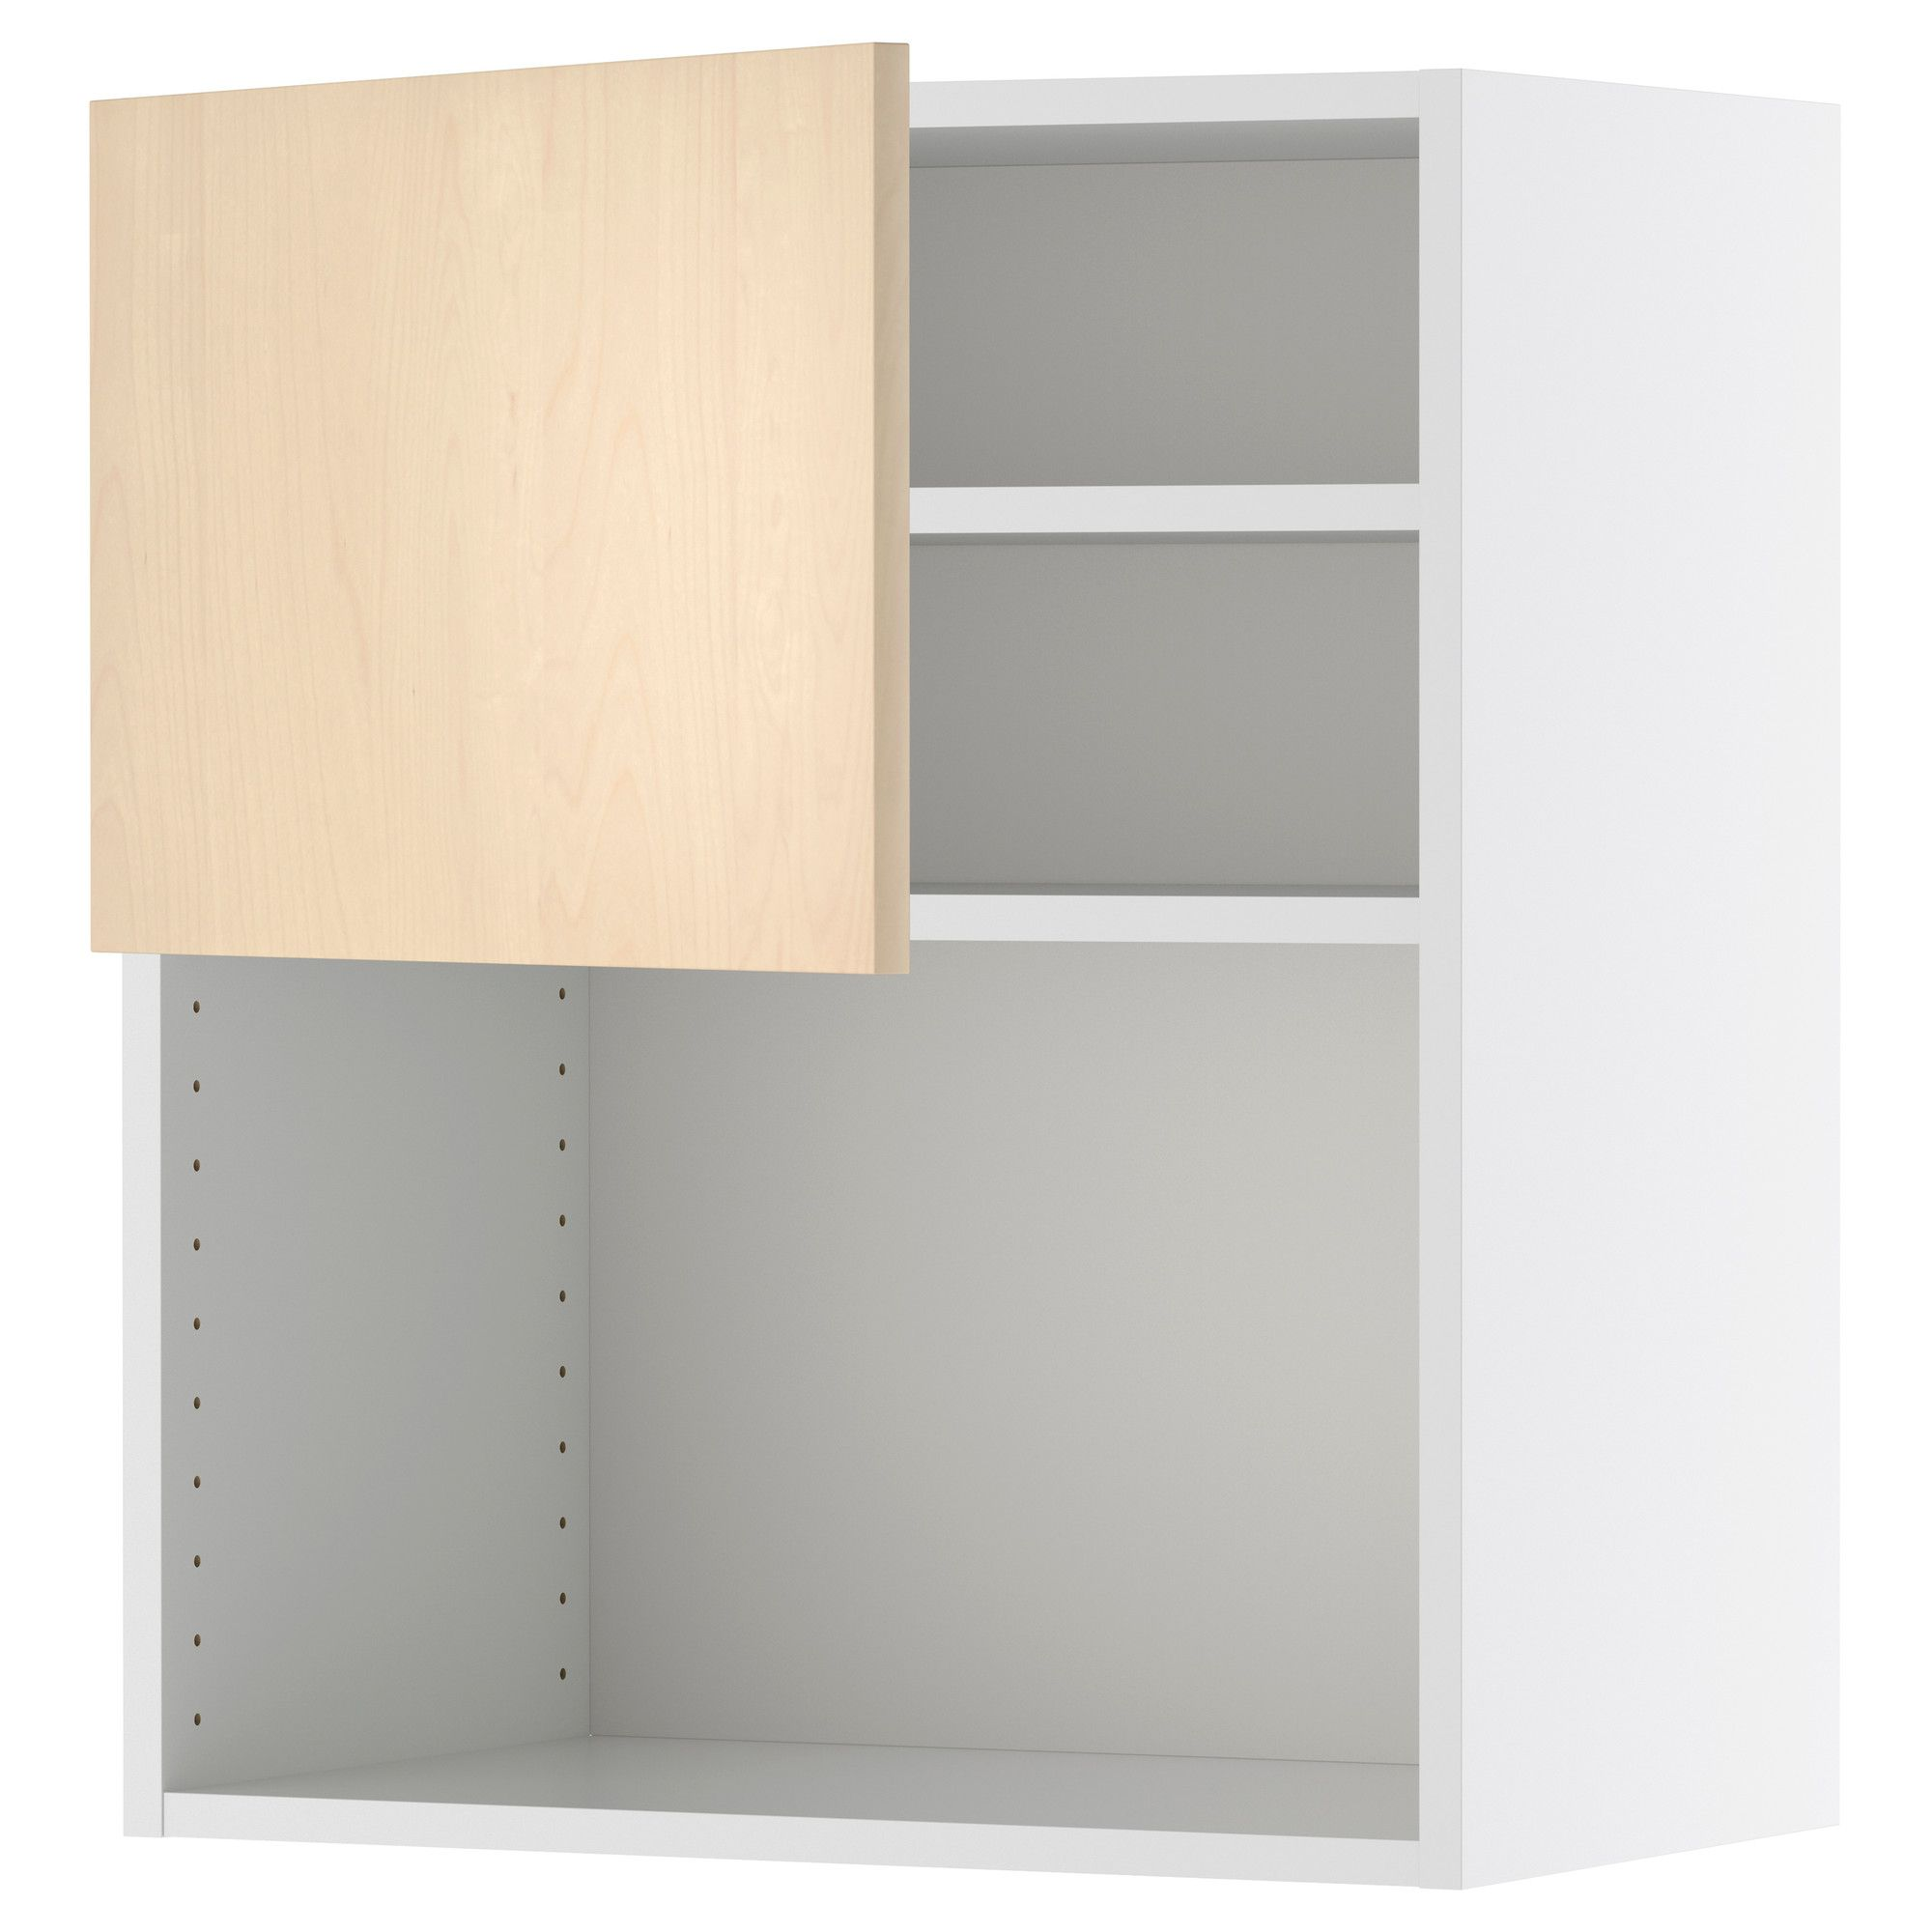 Ikea Küche 60x70 Faktum Wall Cabinet For Microwave Oven Nexus Birch